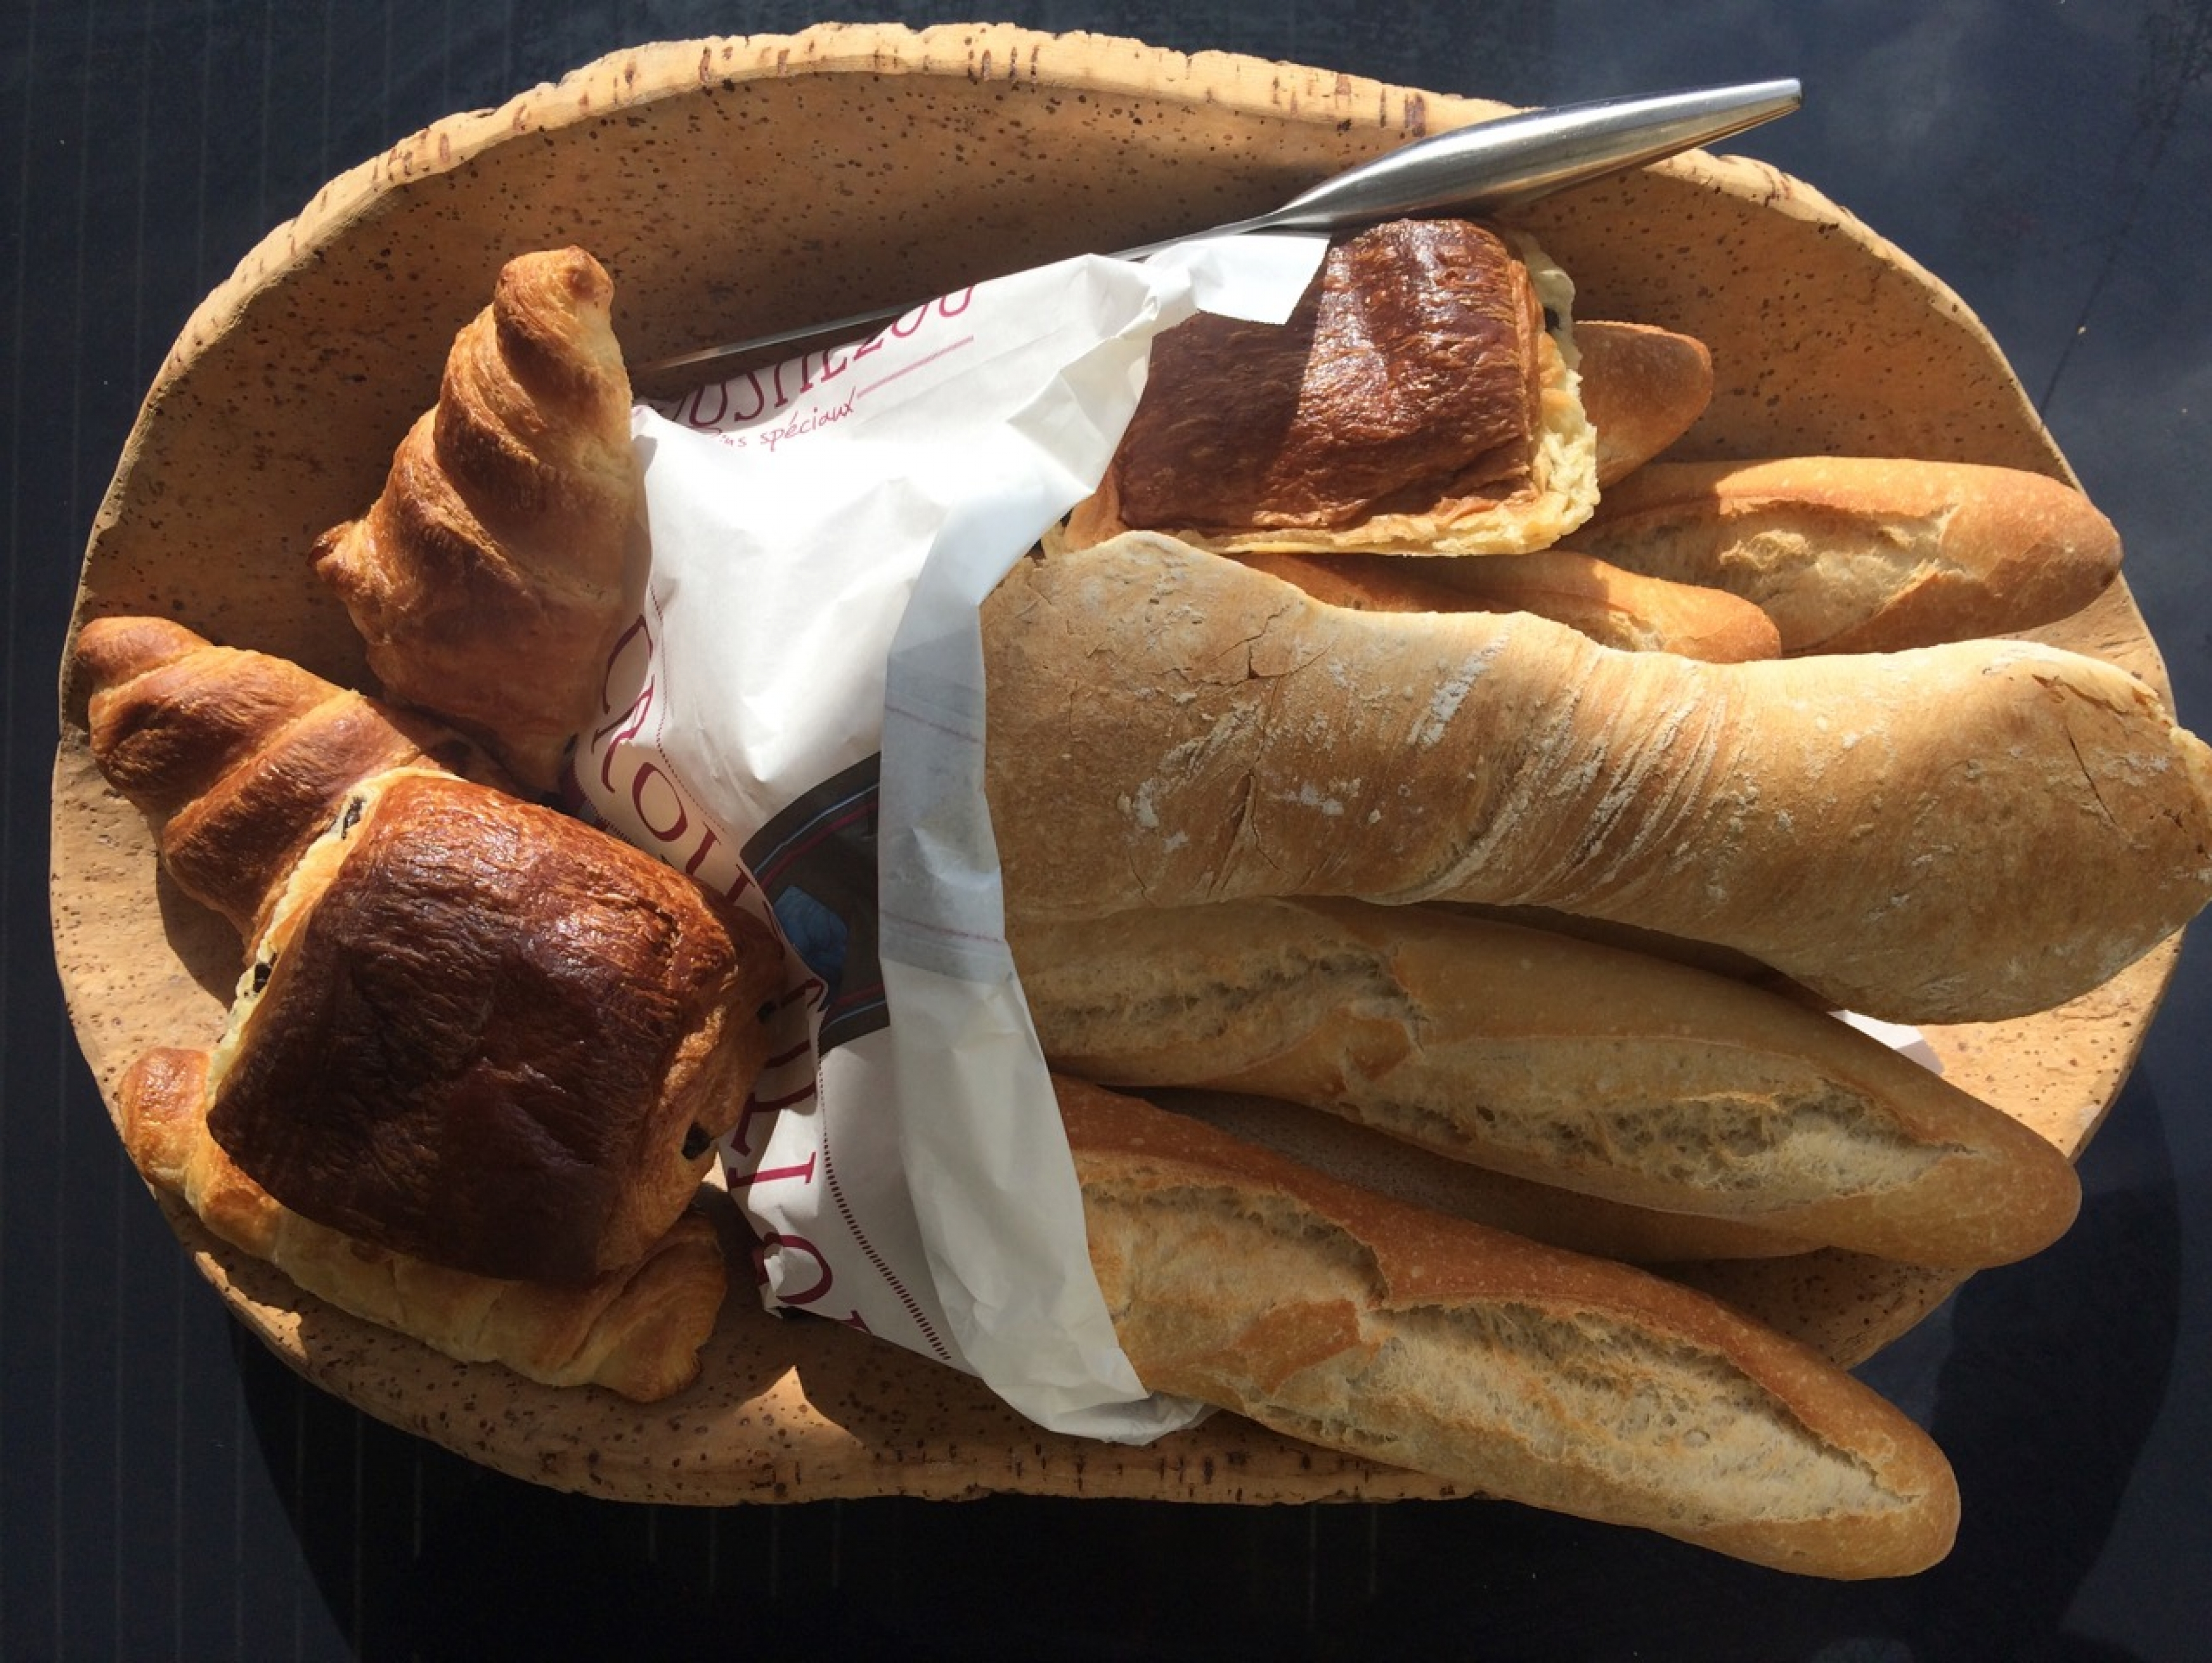 Fresh Bread and Pastries Sancture Sportifs